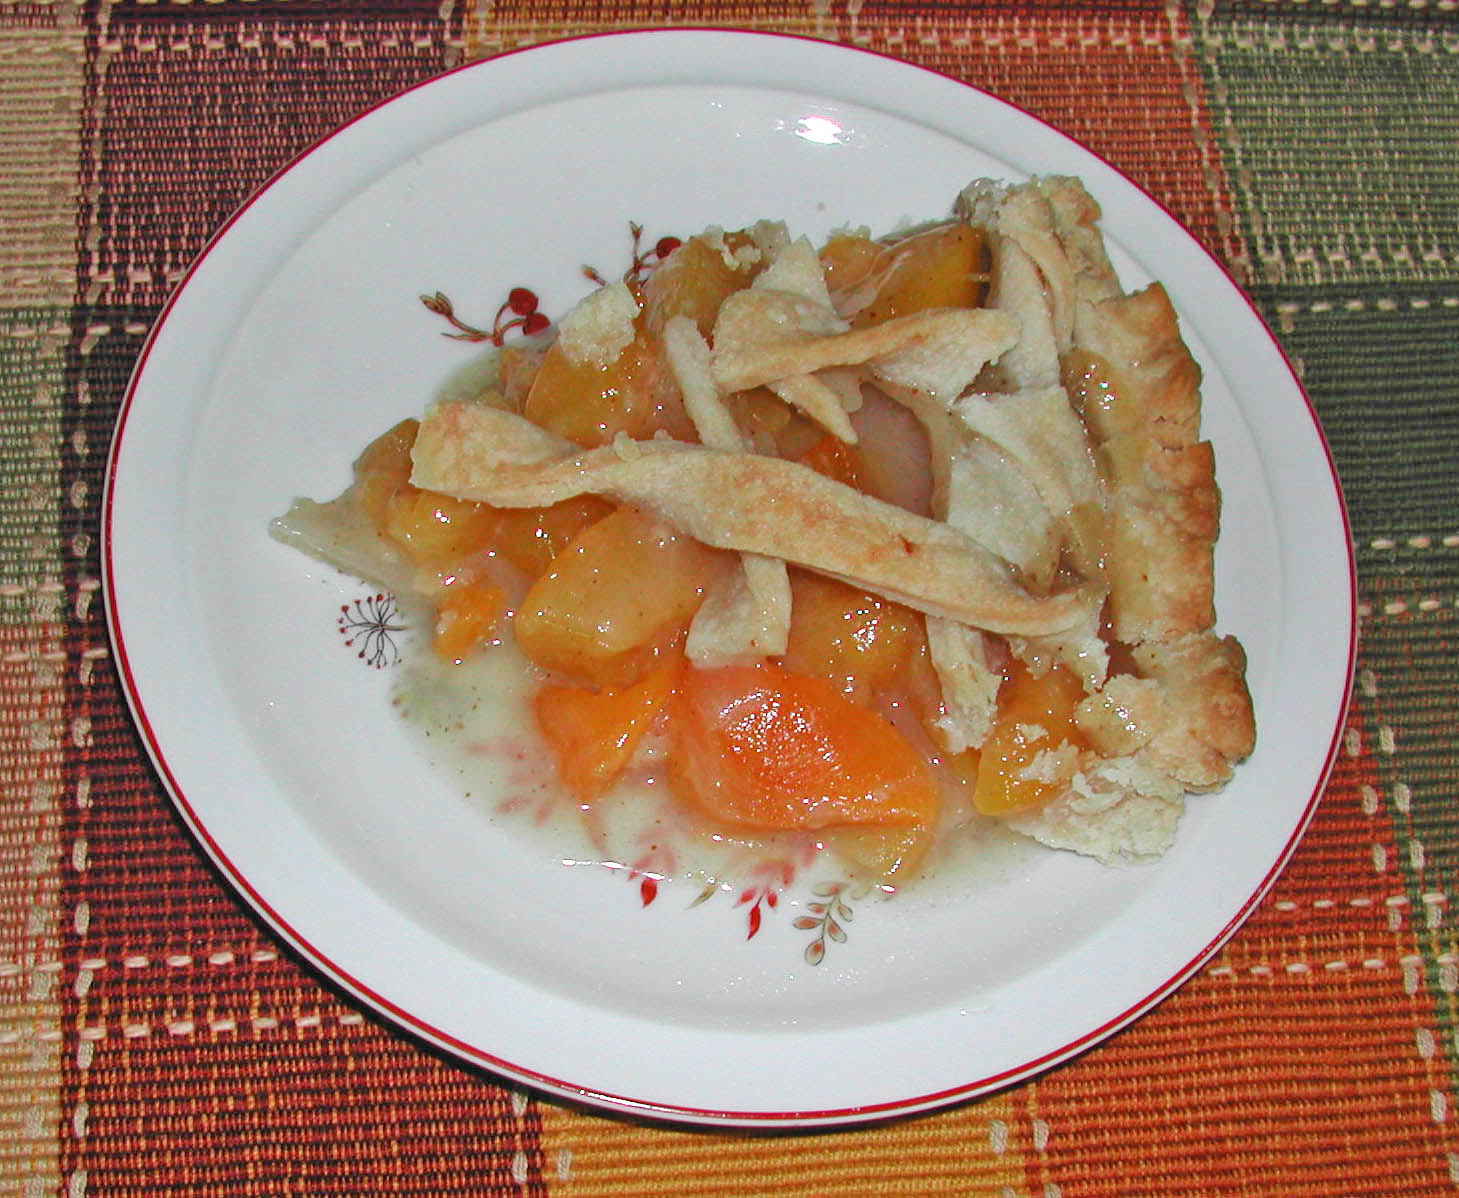 Peach pie. Pie with canned peaches - recipes, photos 75